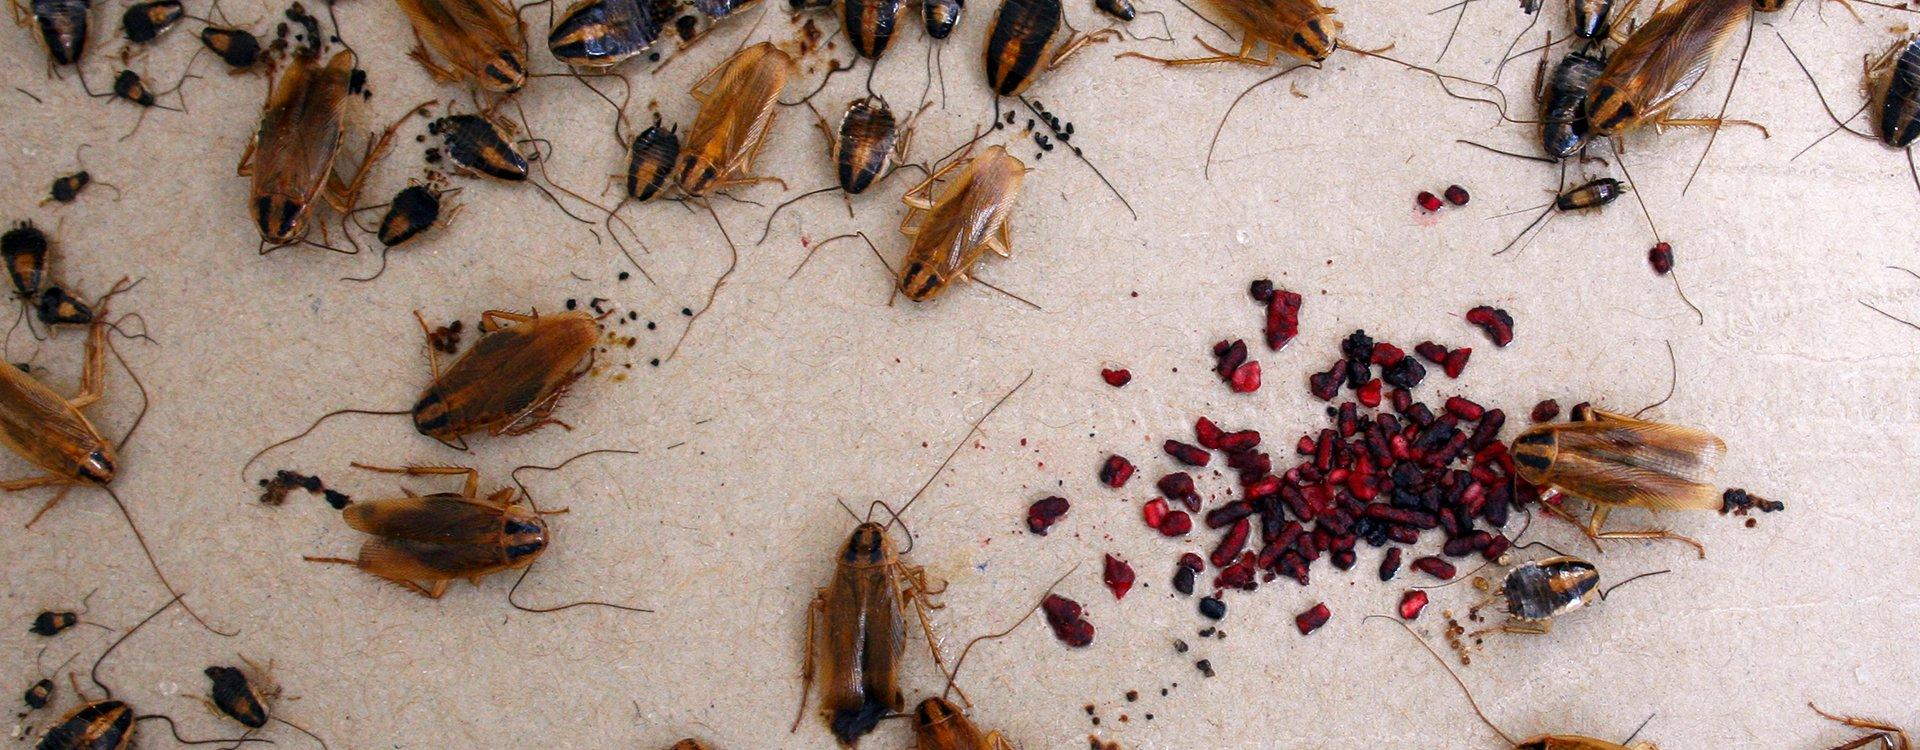 cockroaches on a glue board